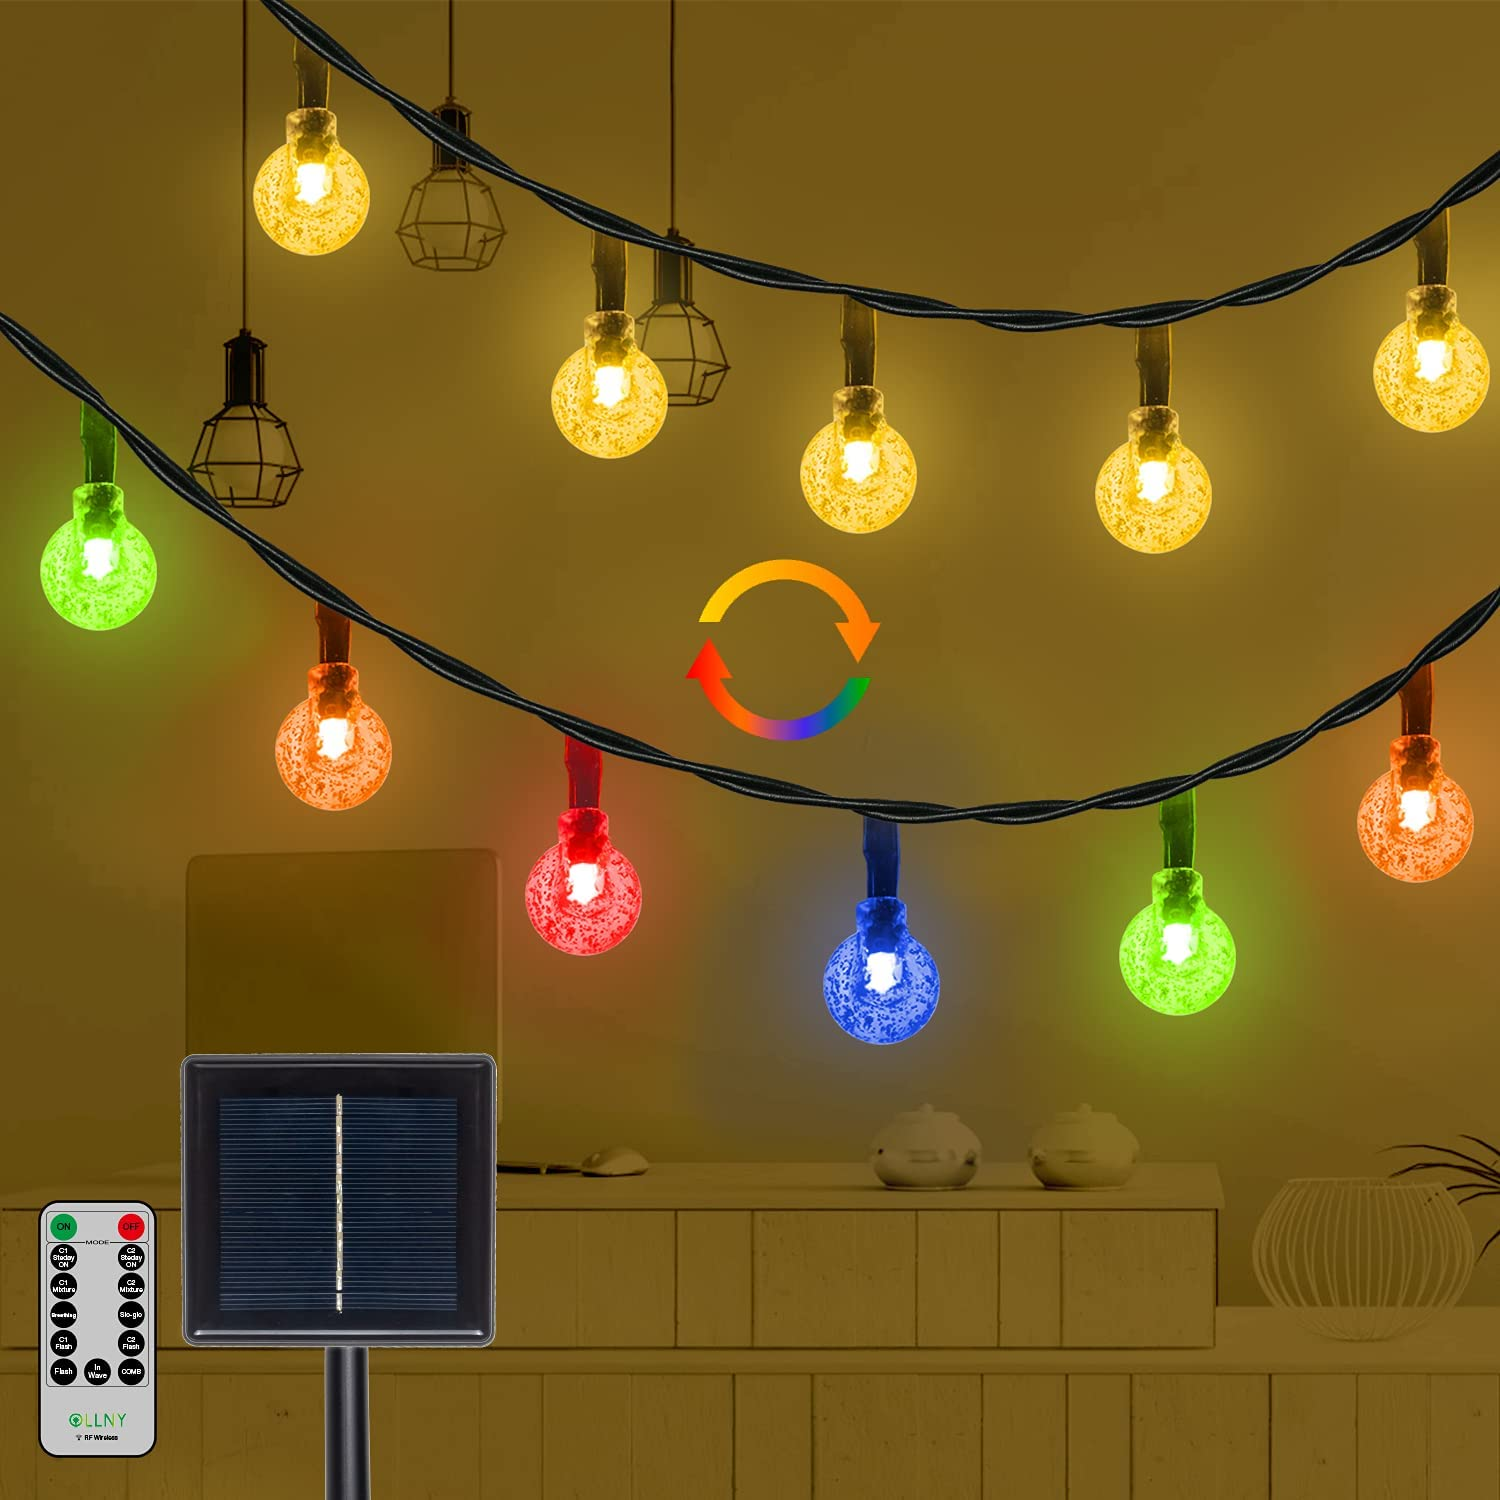 Solar String Lights Outdoor, 50 LEDs Christmas Lights Warm White Color Changing Globe Fairy Twinkle Lights with Remote&11 Mode, Waterproof for Outdoor Garden Patio Yard Tree Home Wedding Decor -25ft